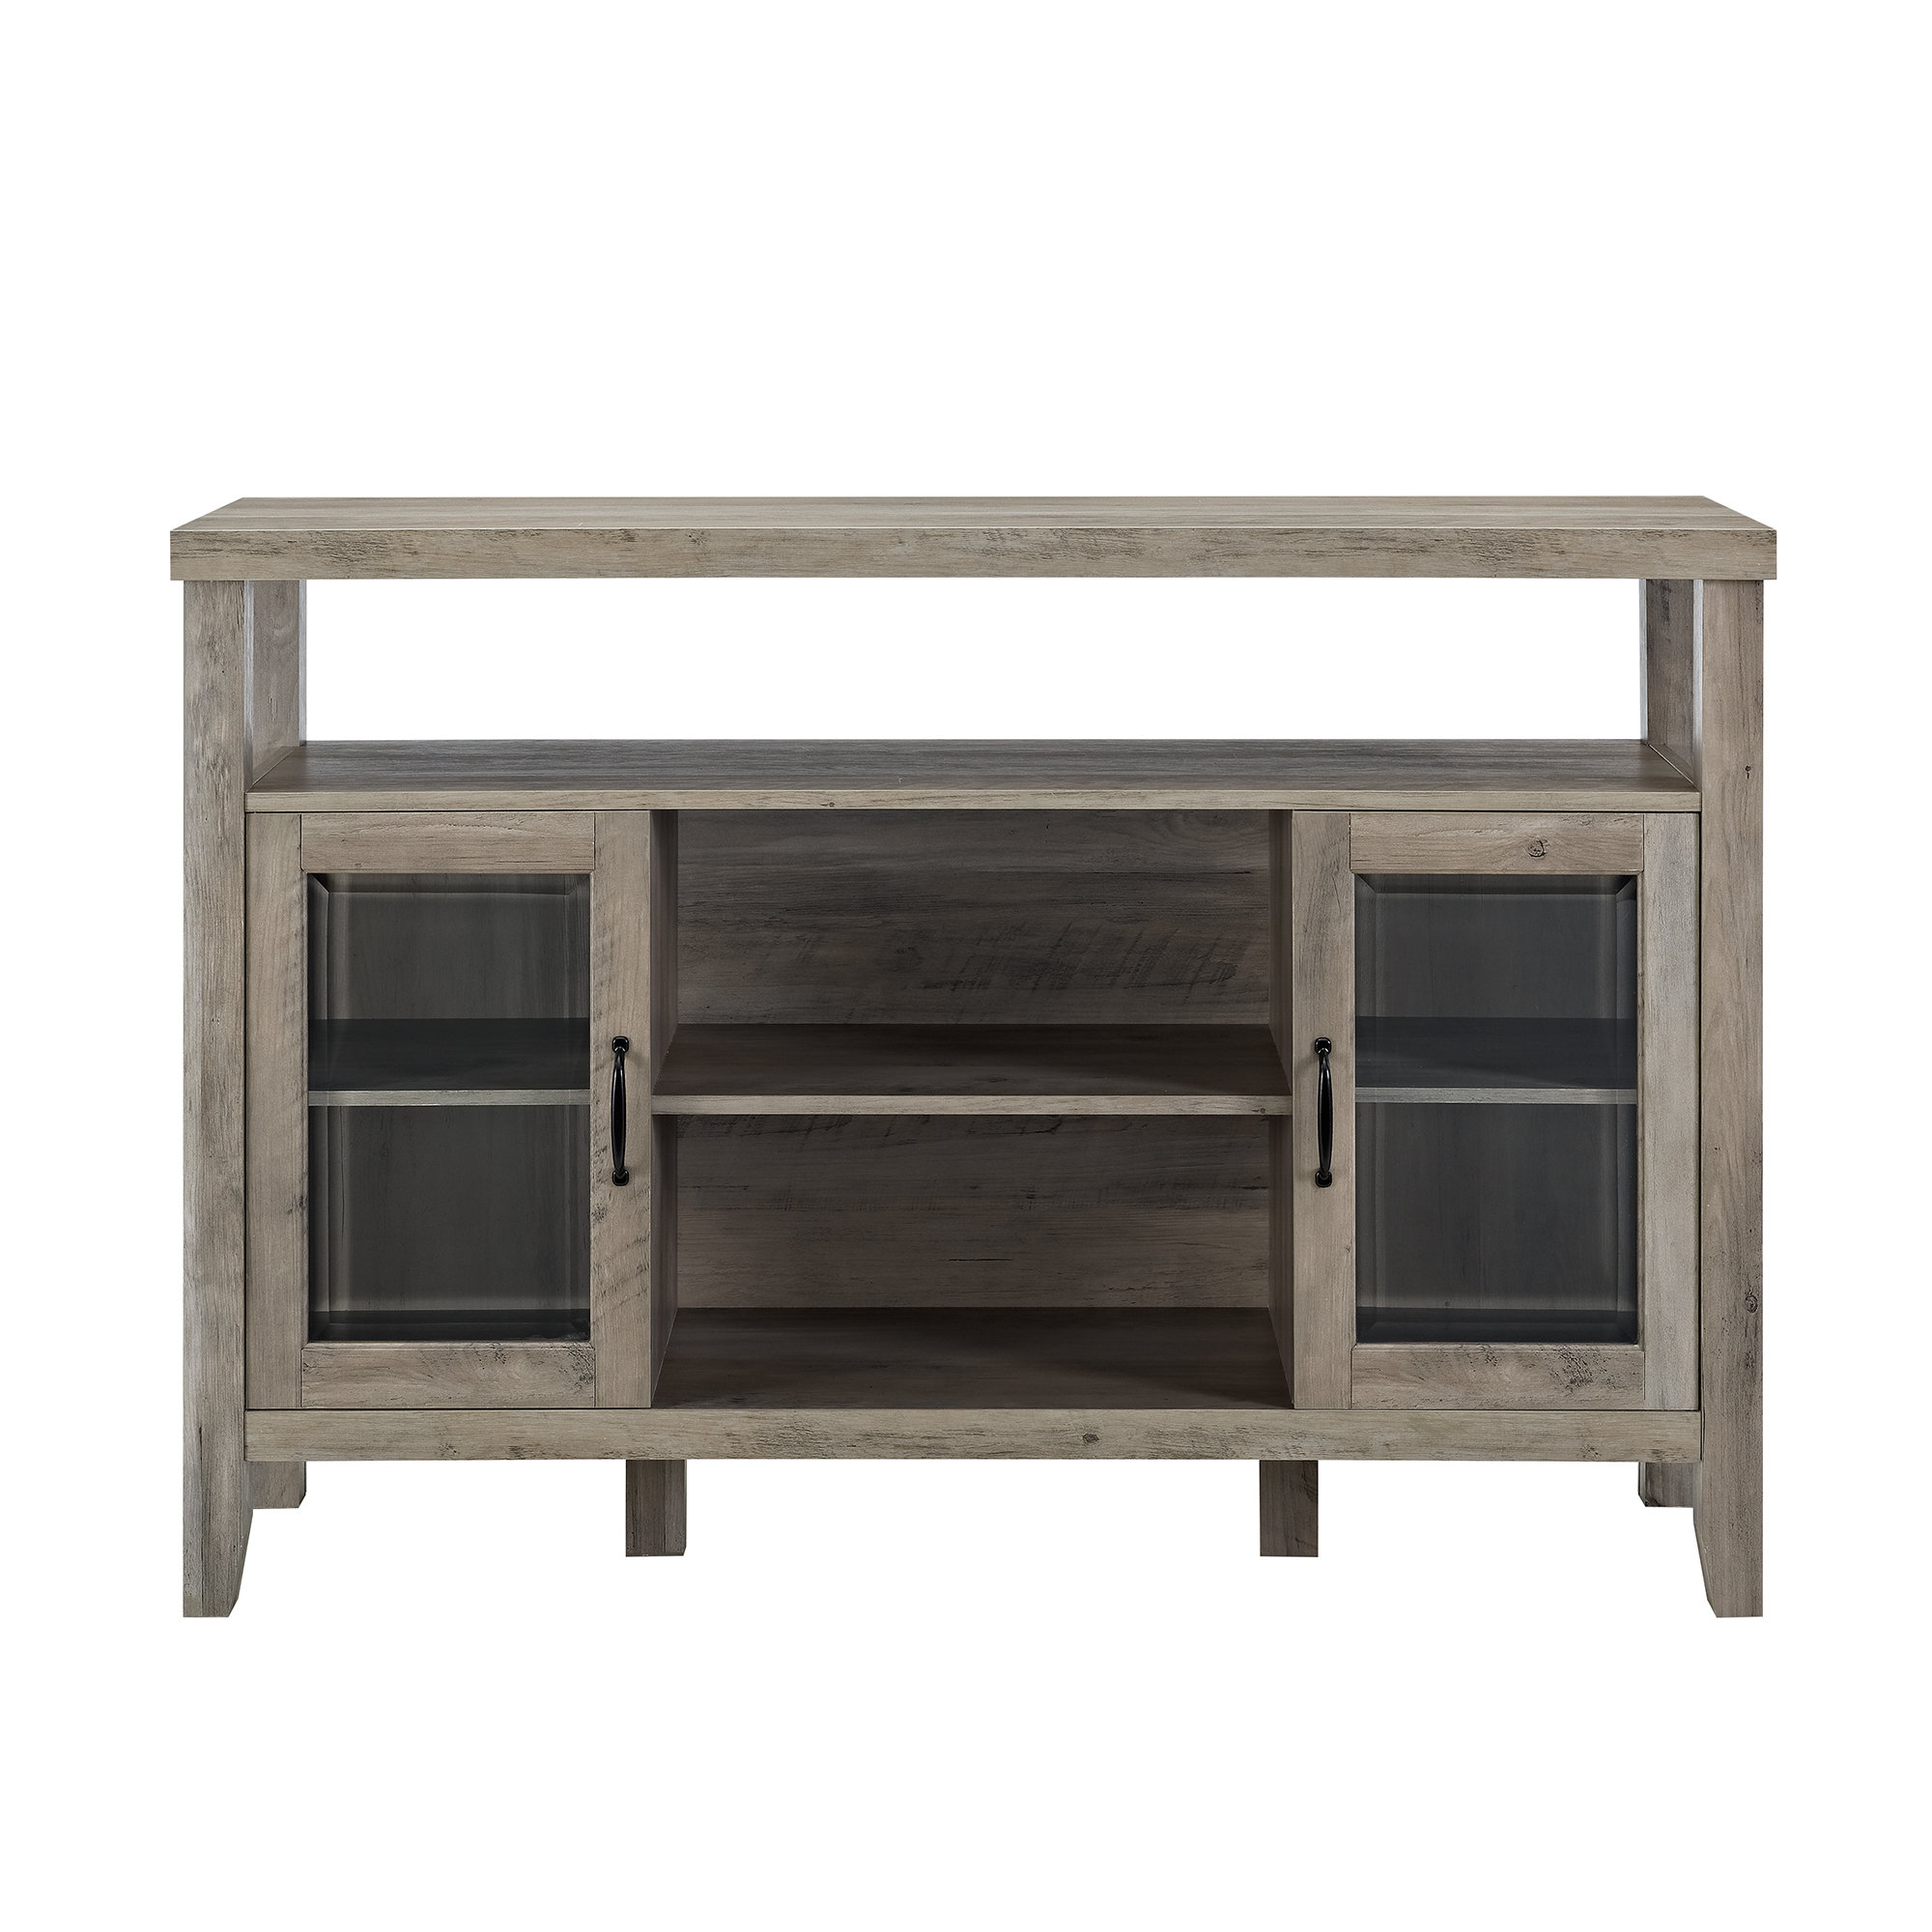 Inspiration about Modern & Contemporary Juniper 3 Door Sideboard | Allmodern Throughout Recent Jacklyn 3 Door Sideboards (#3 of 20)